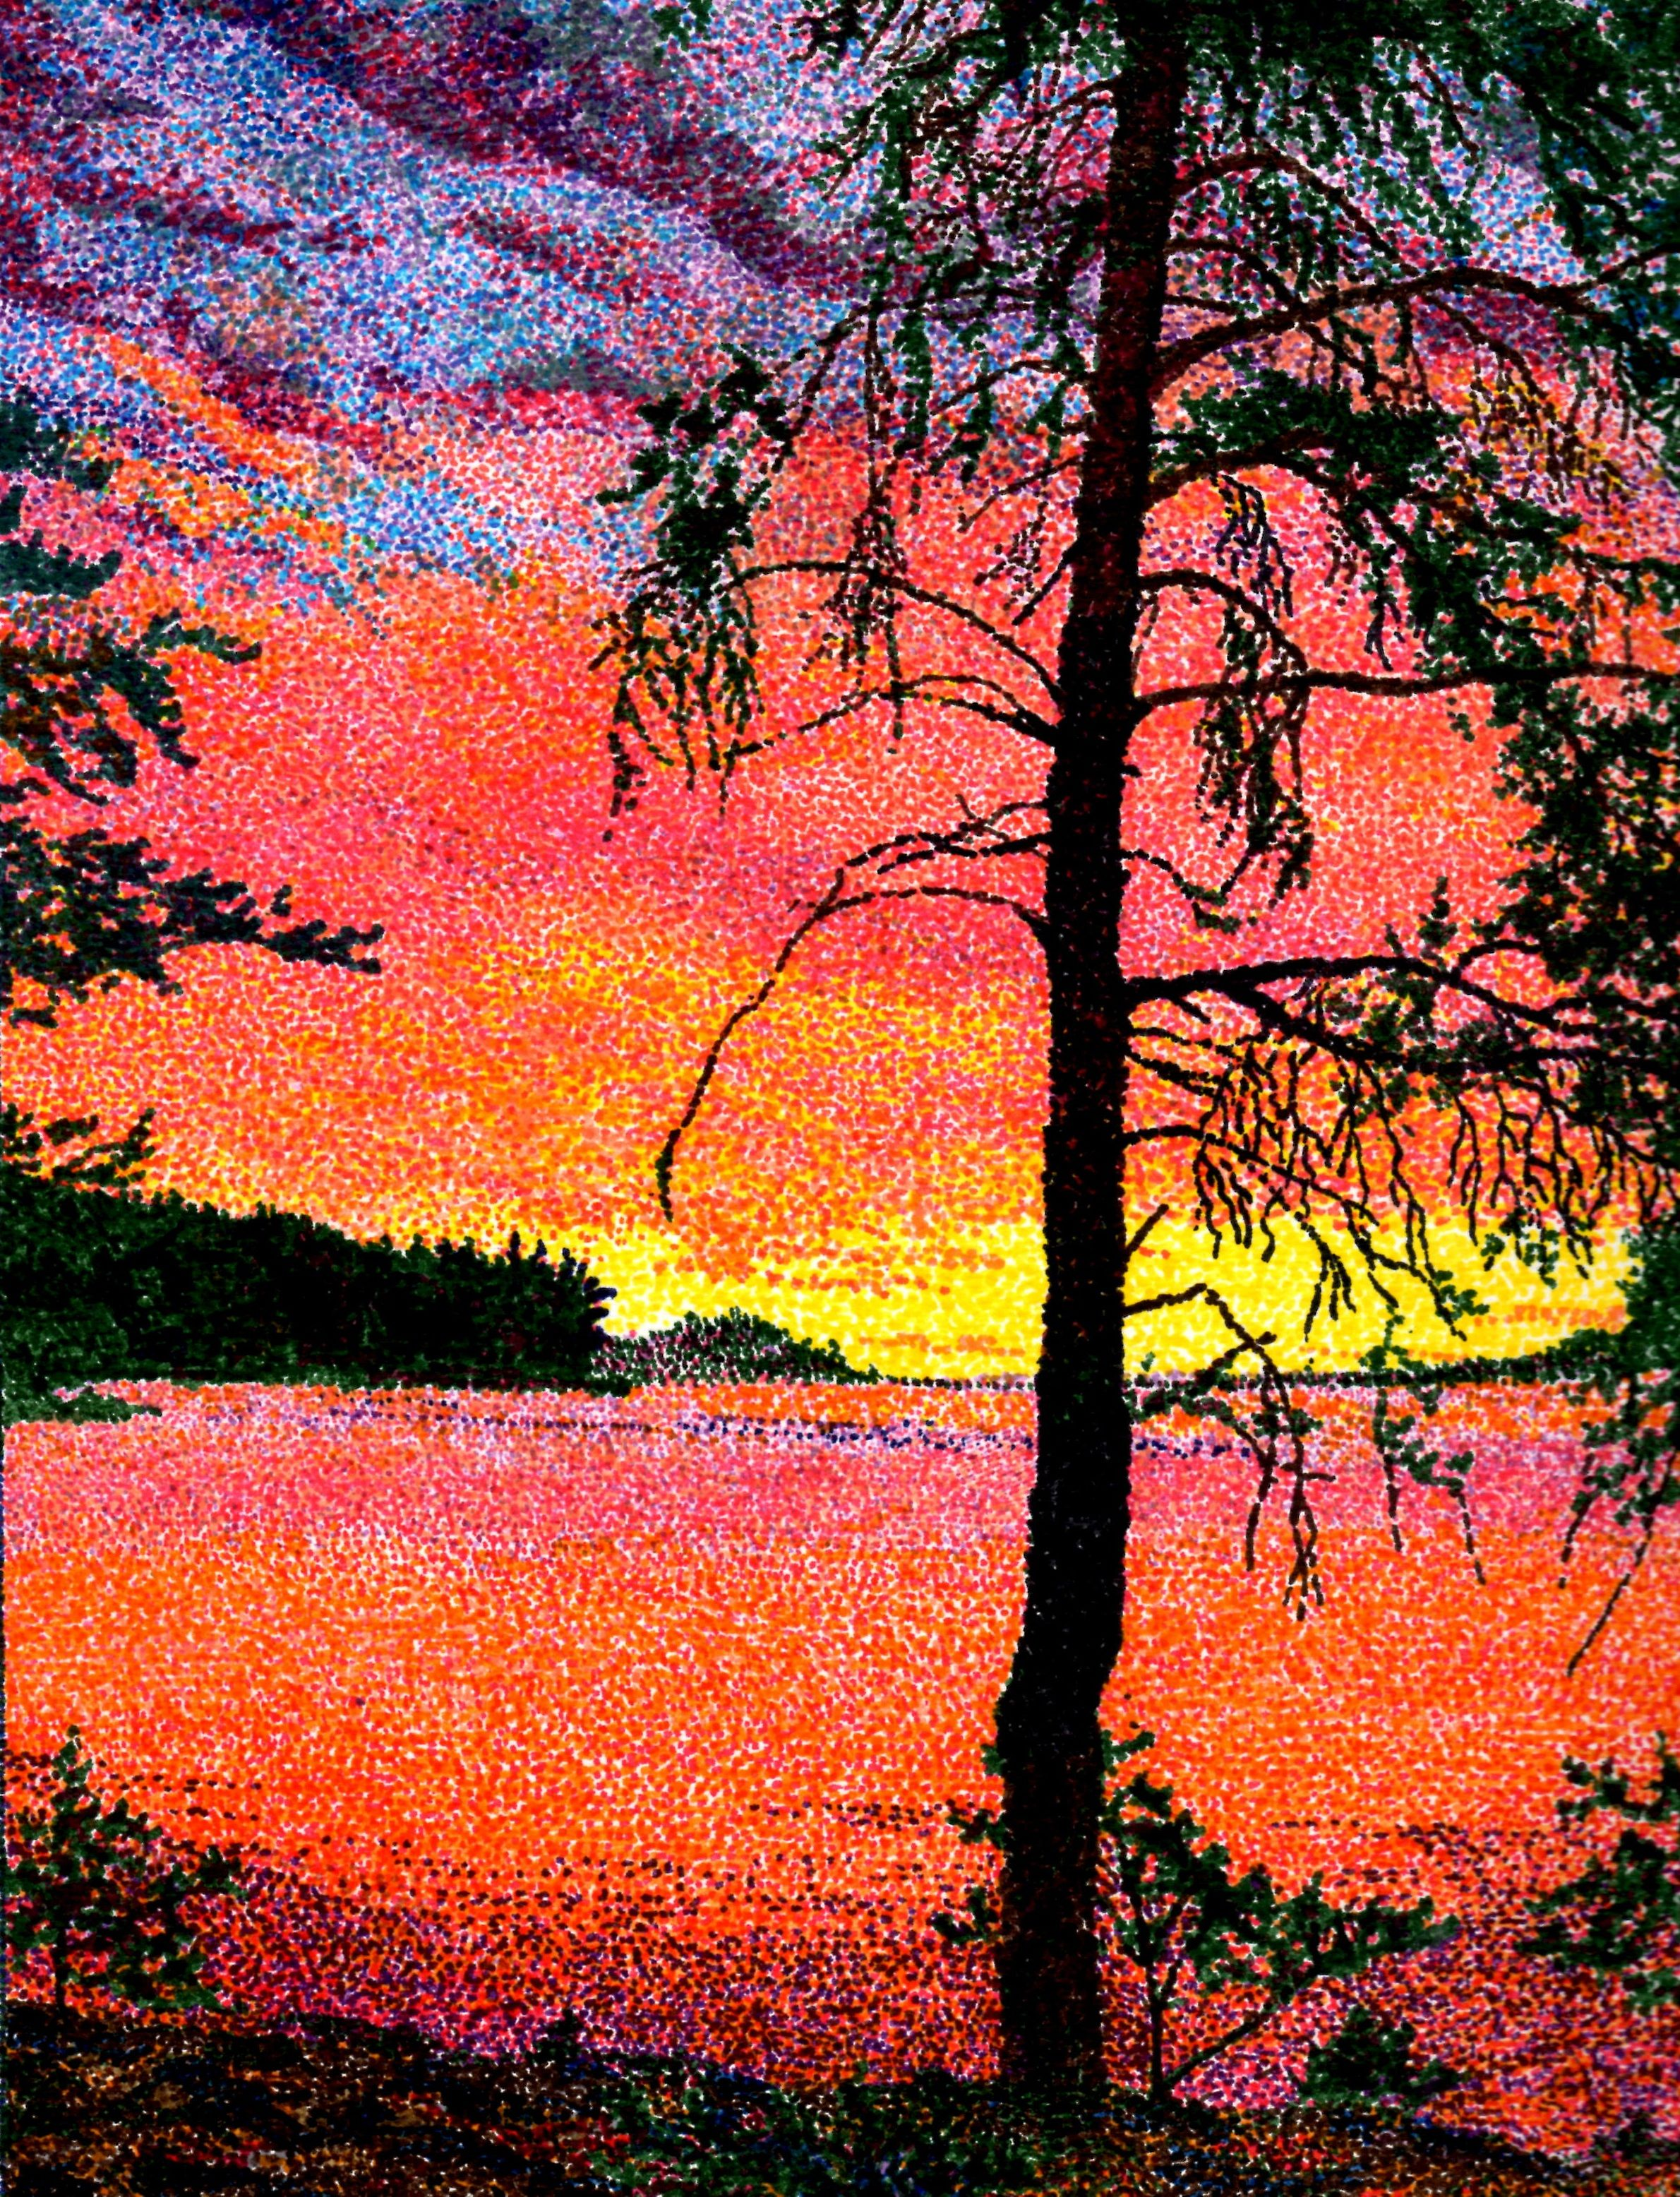 Draw Silhouette Of Trees With Sharpie Then Hve Students Pointillism The Sunset